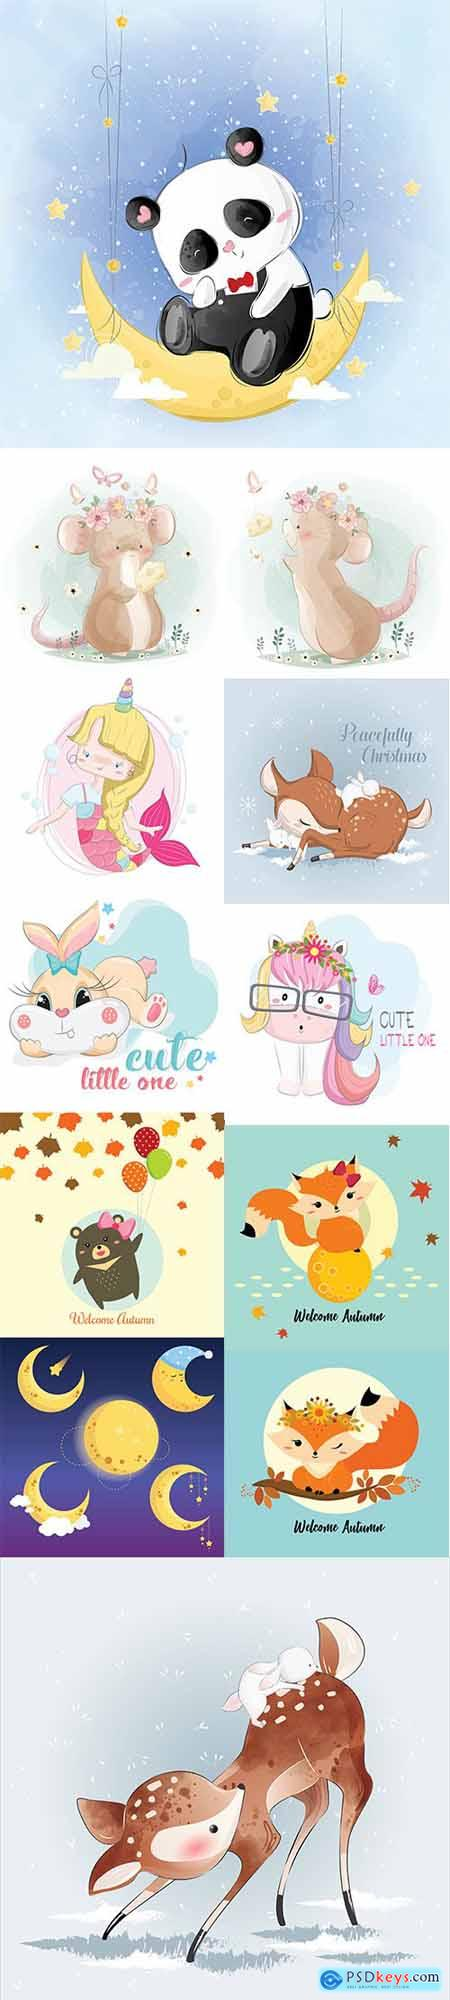 Set of Hand Draw Watercolor Adorable Animals Illustrations Vol 5